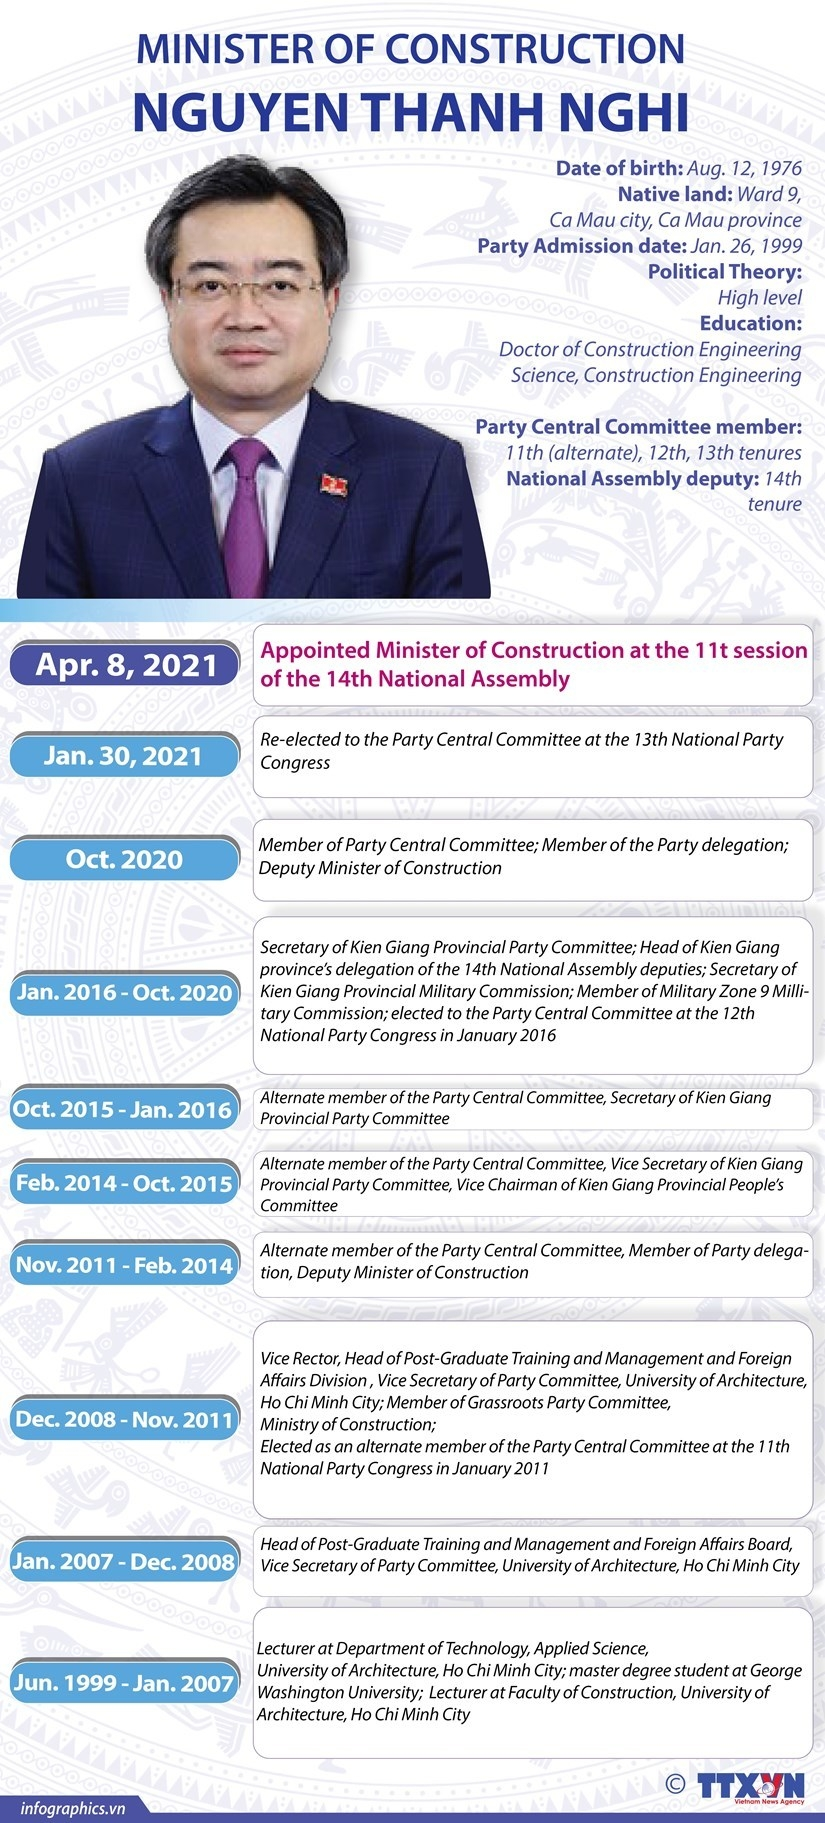 Biography of Vietnam Minister of Construction Nguyen Thanh Nghi: Positions and Working History